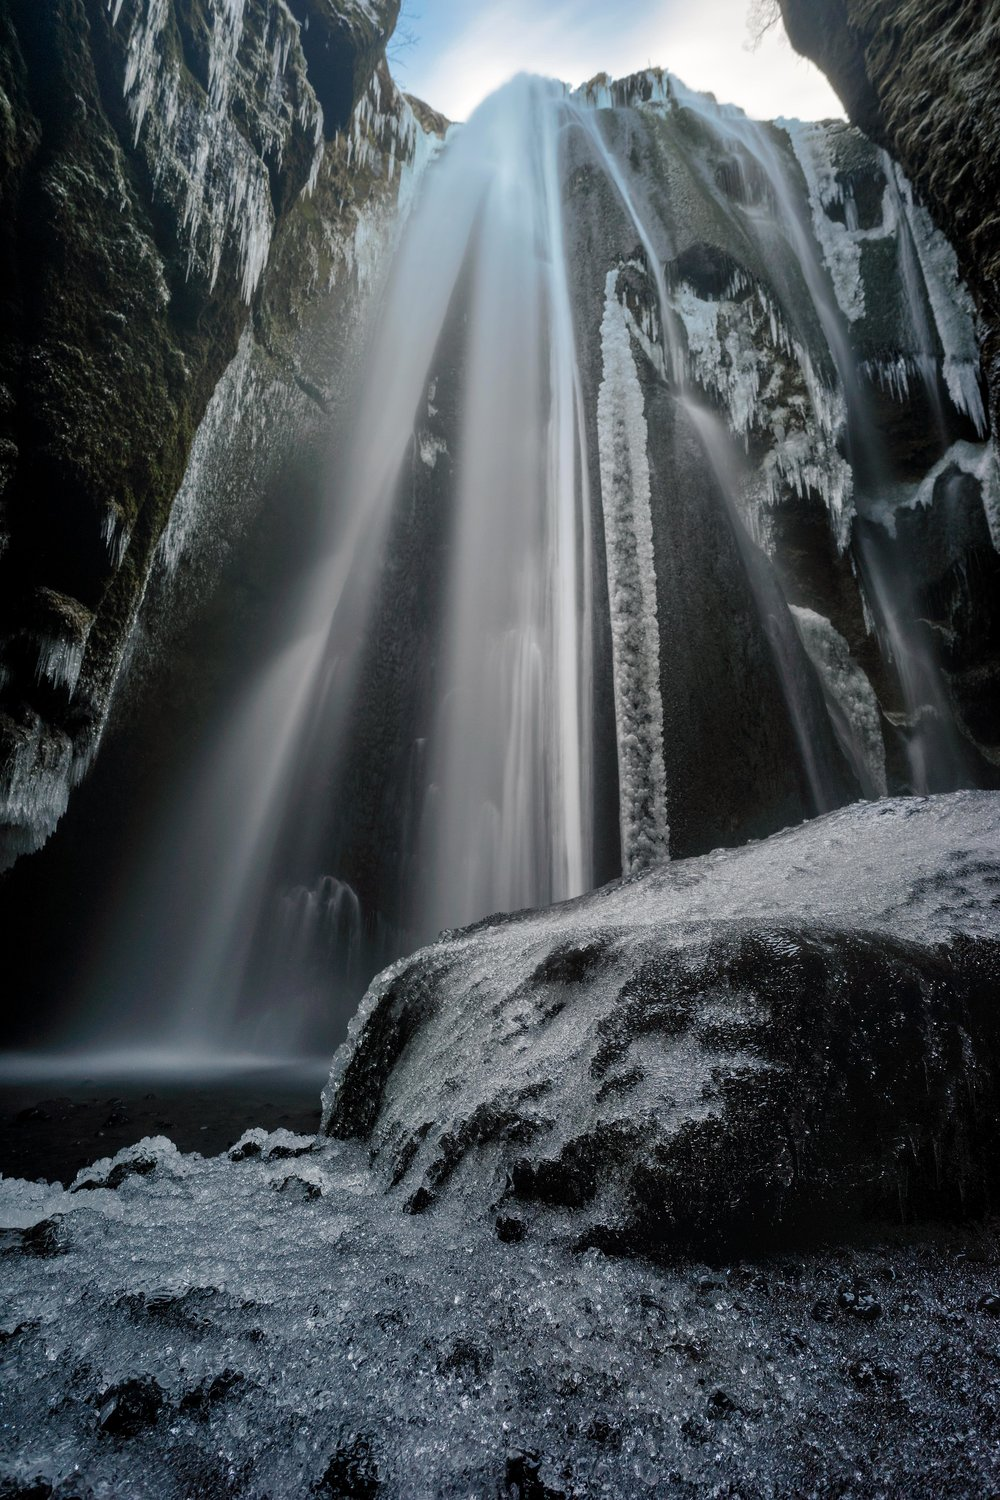 Iceland. snow. travel. adventure. photography. trip. epic landscape. snow. cold. freezing. sunrise. hidden waterfall.jpg